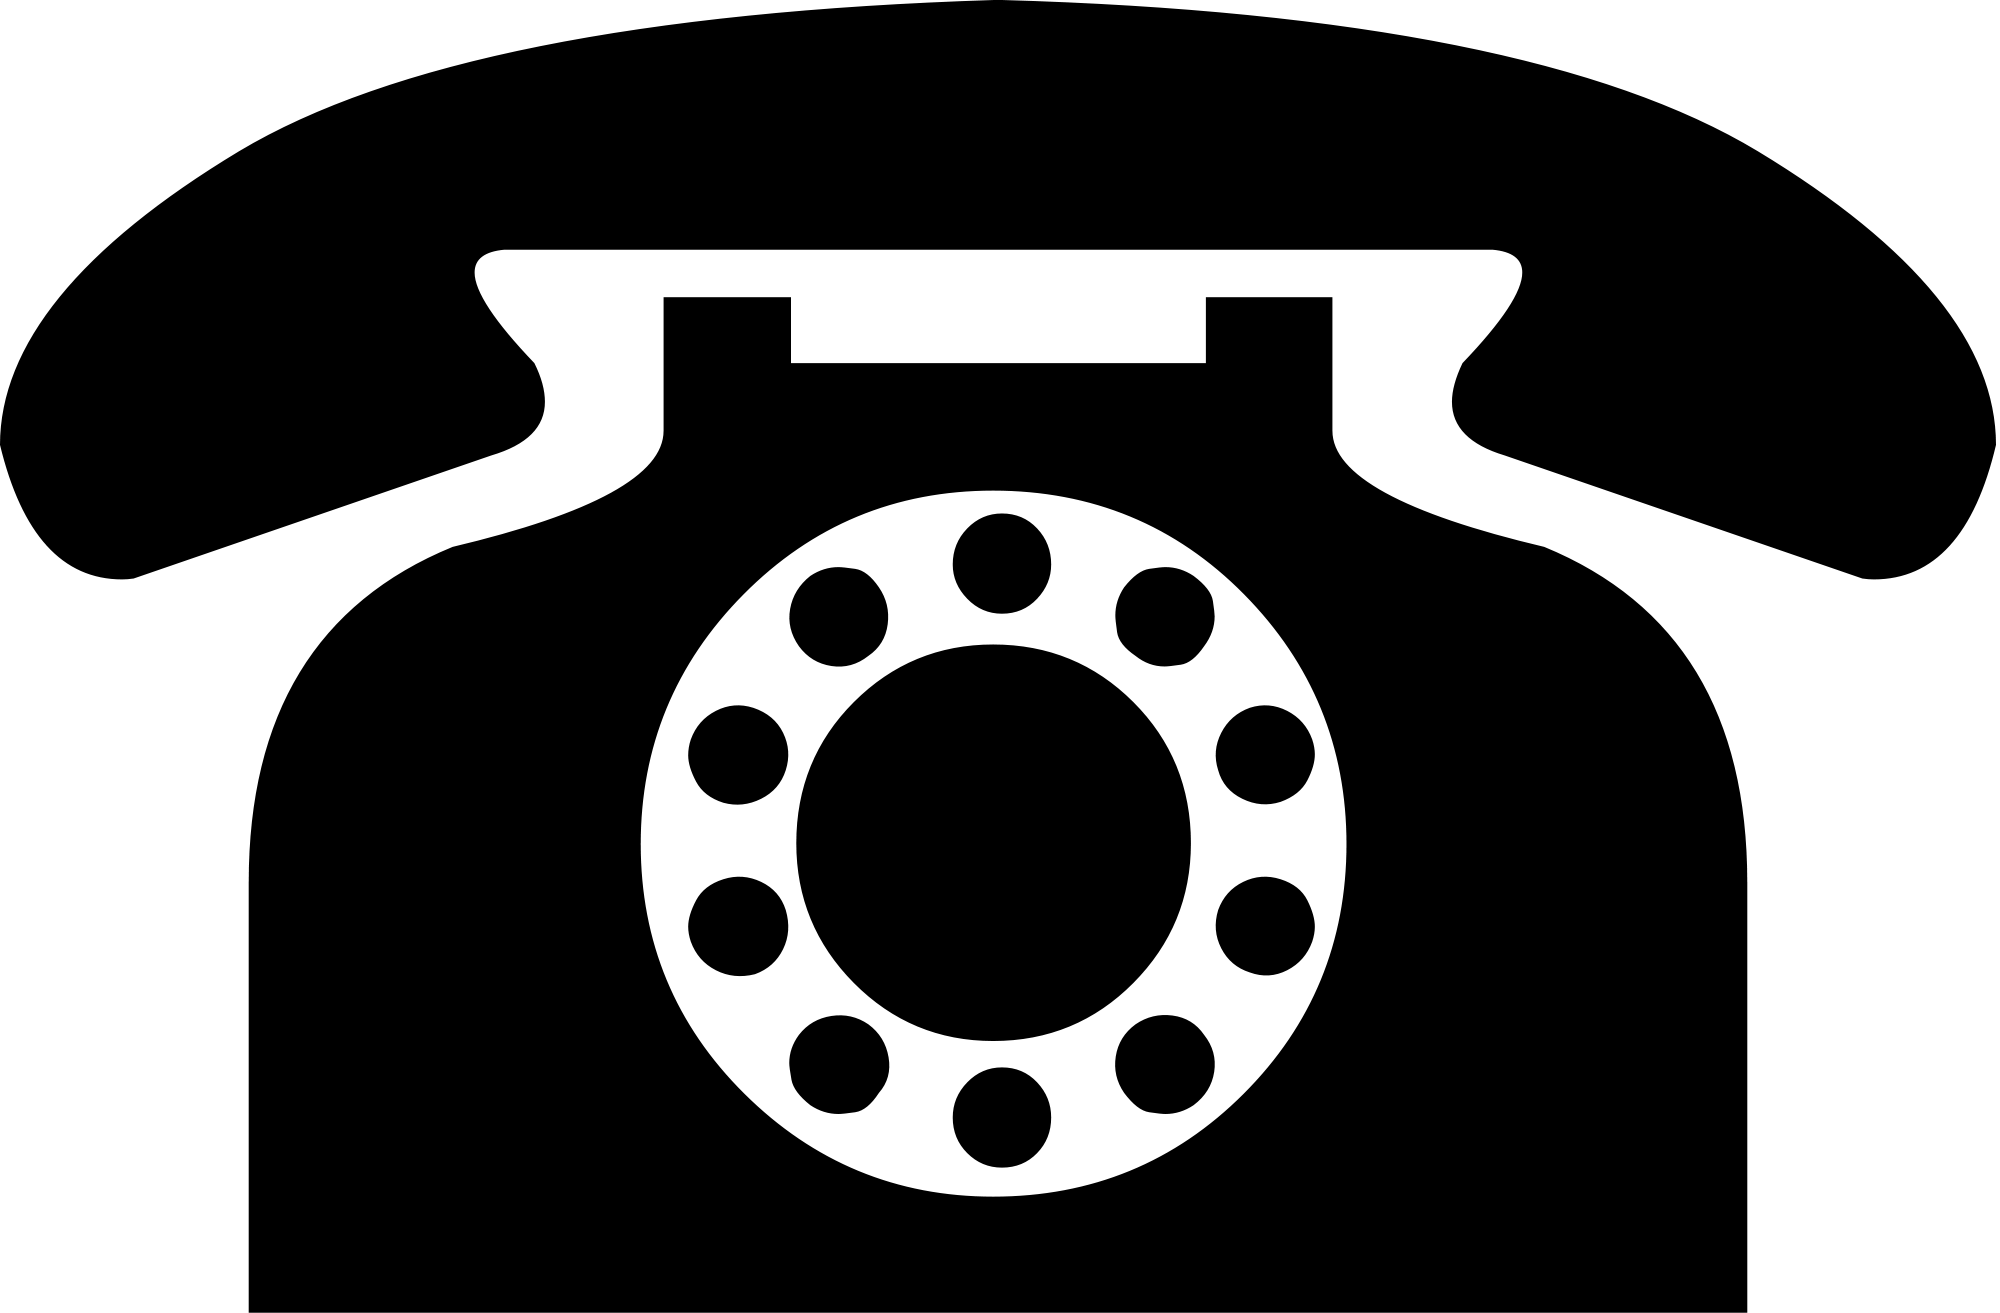 White phone icon png. File black telephone from